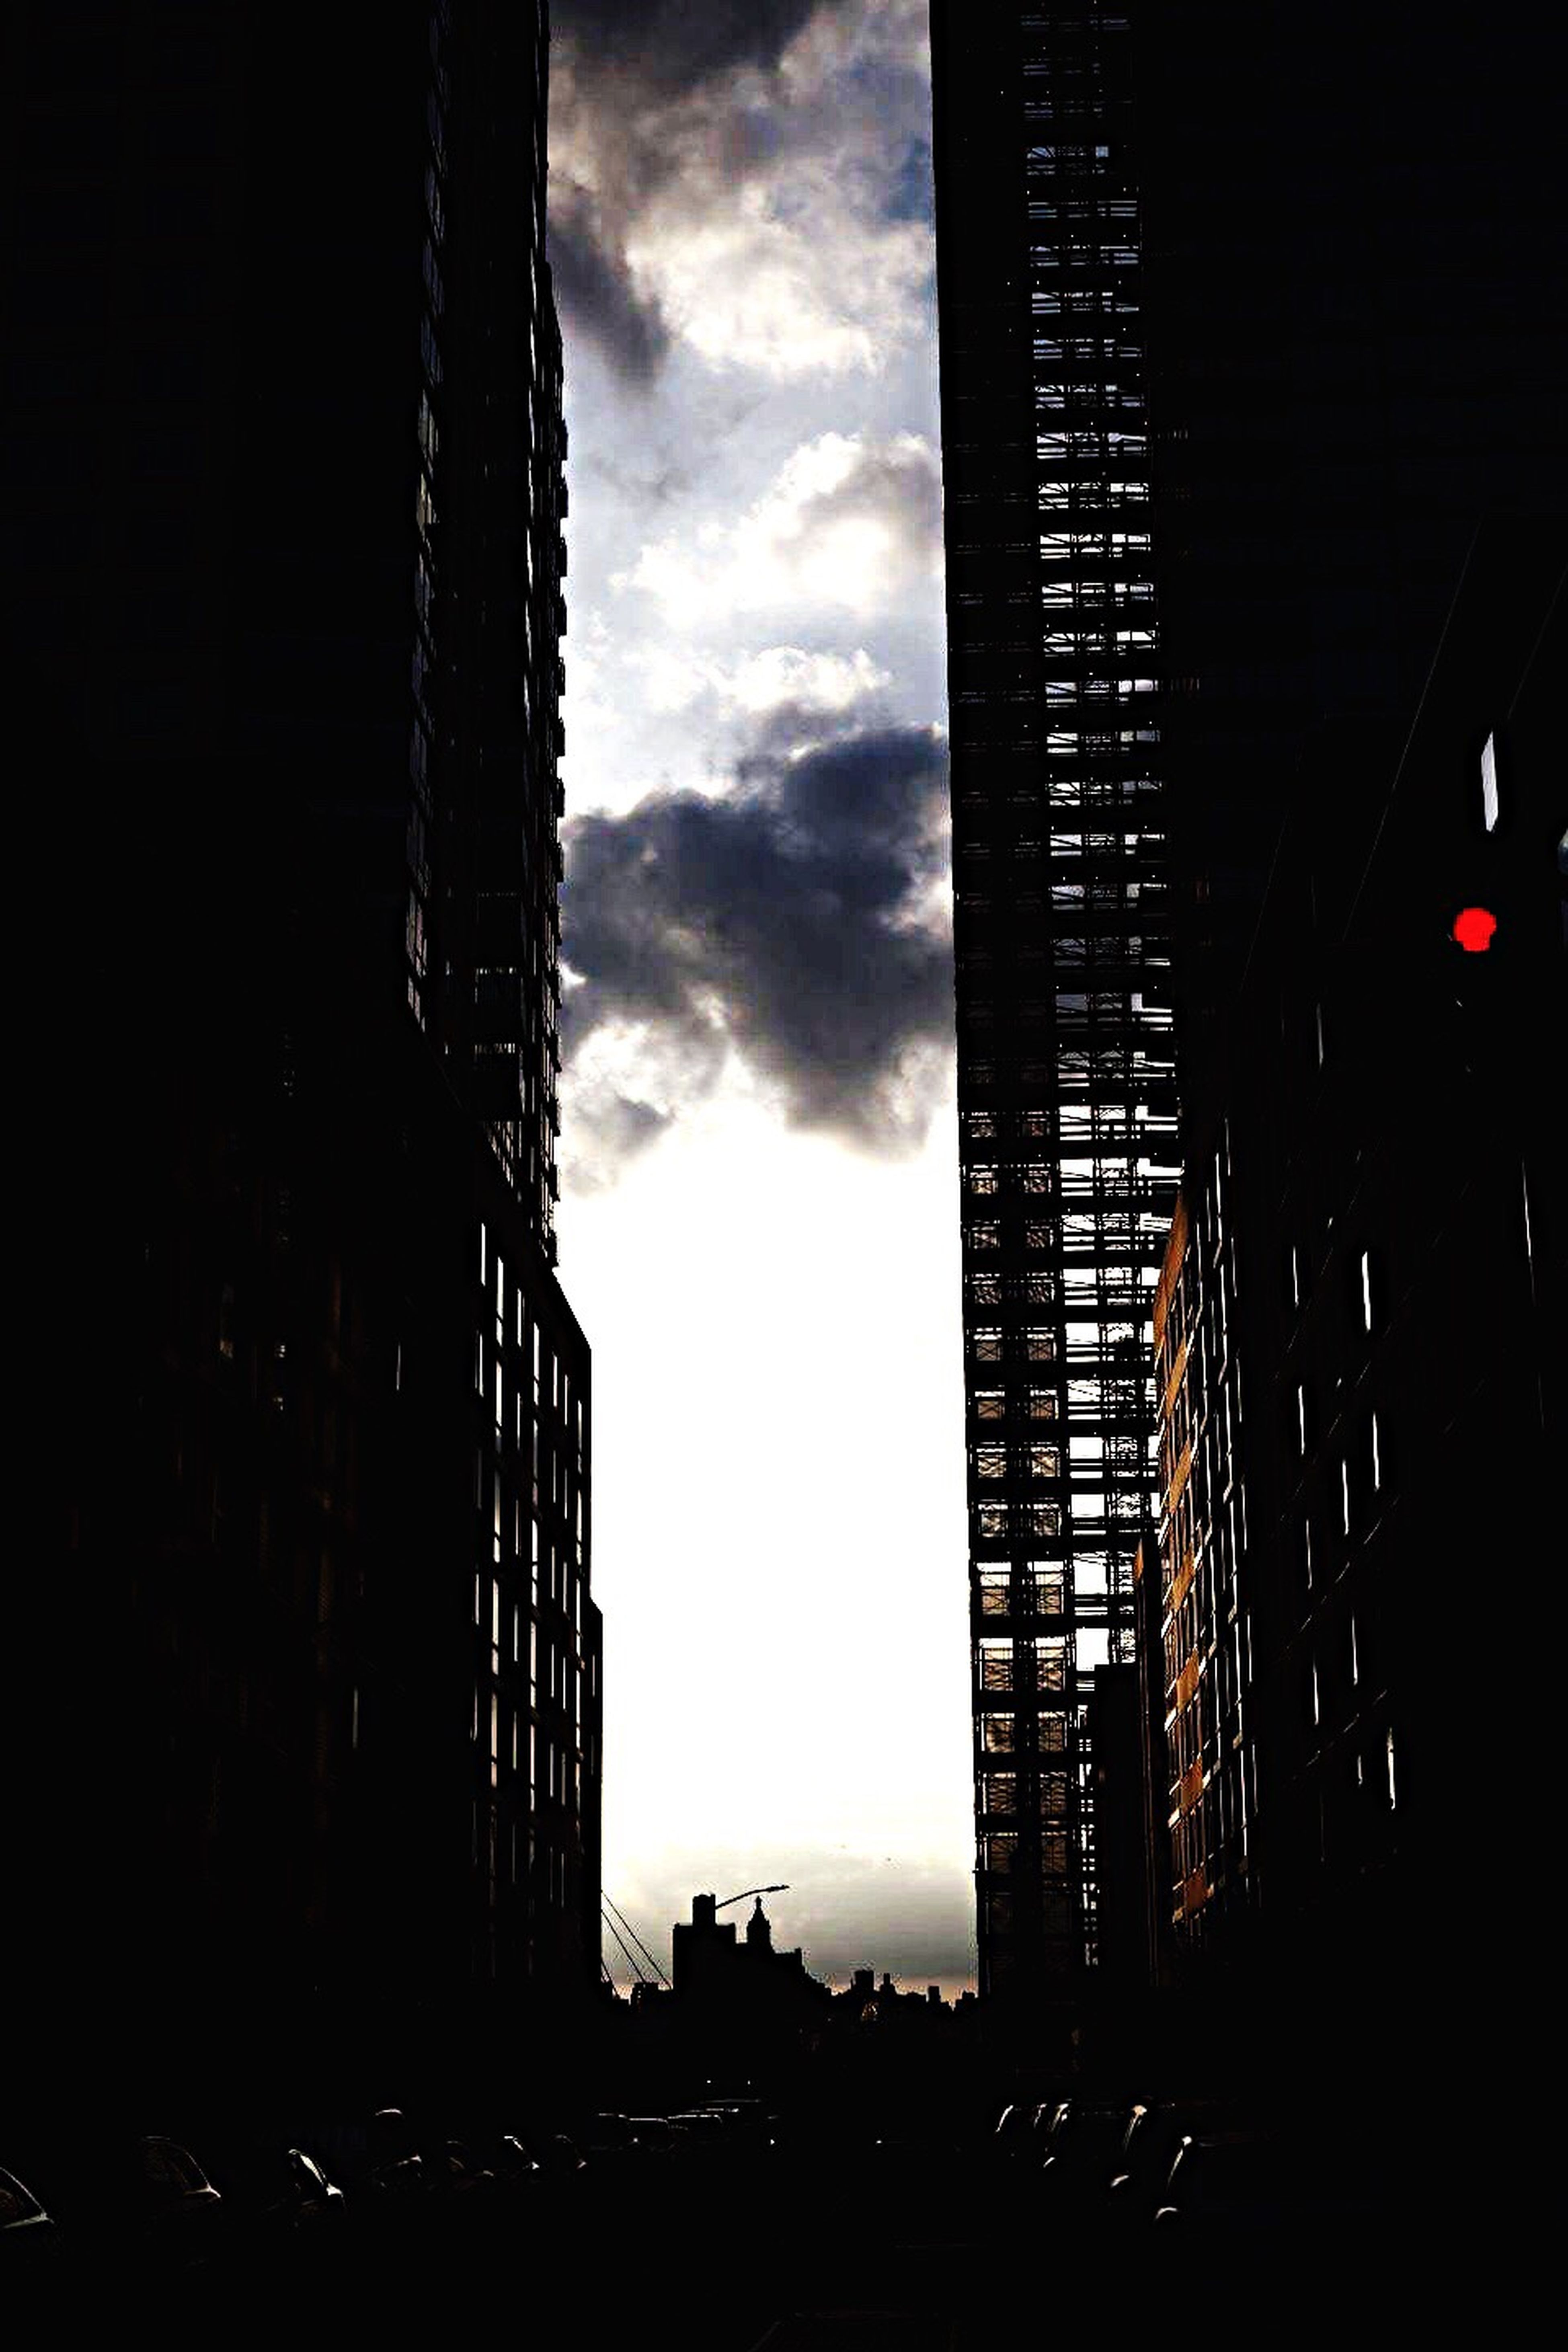 NYC City Life Streetphotography Canon Art And Craft Torontophotographer Photooftheday Photographer Street Urban Skyline Built Structure Architecture Cloud - Sky Building Exterior Followme Toronto